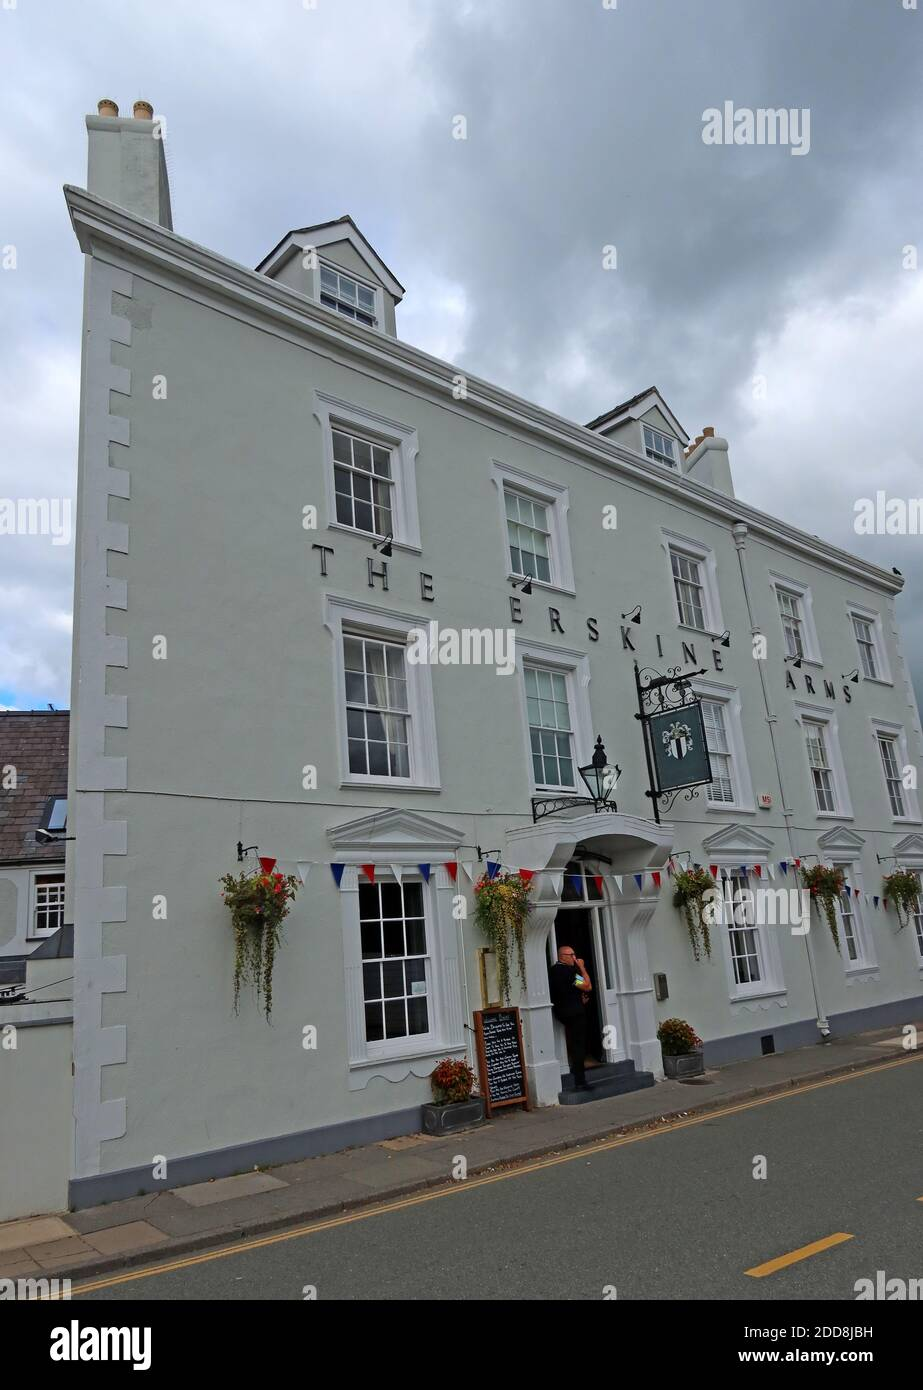 GoTonySmith,Hotpixuk,@Hotpixuk,North Wales,coast,Conway,River Conwy Quay,coastal,town,Gwynedd,Welsh,Wales,UK,tourist,tourism,harbourside,LL32,Victorian,building,Hotel,coaching Inn,1830,1840,landowners,stables,The Malt Loaf,CAMRA,beer,bar,pub,real ale,Georgian coaching inn,Georgian,coaching inn,renovated,updated